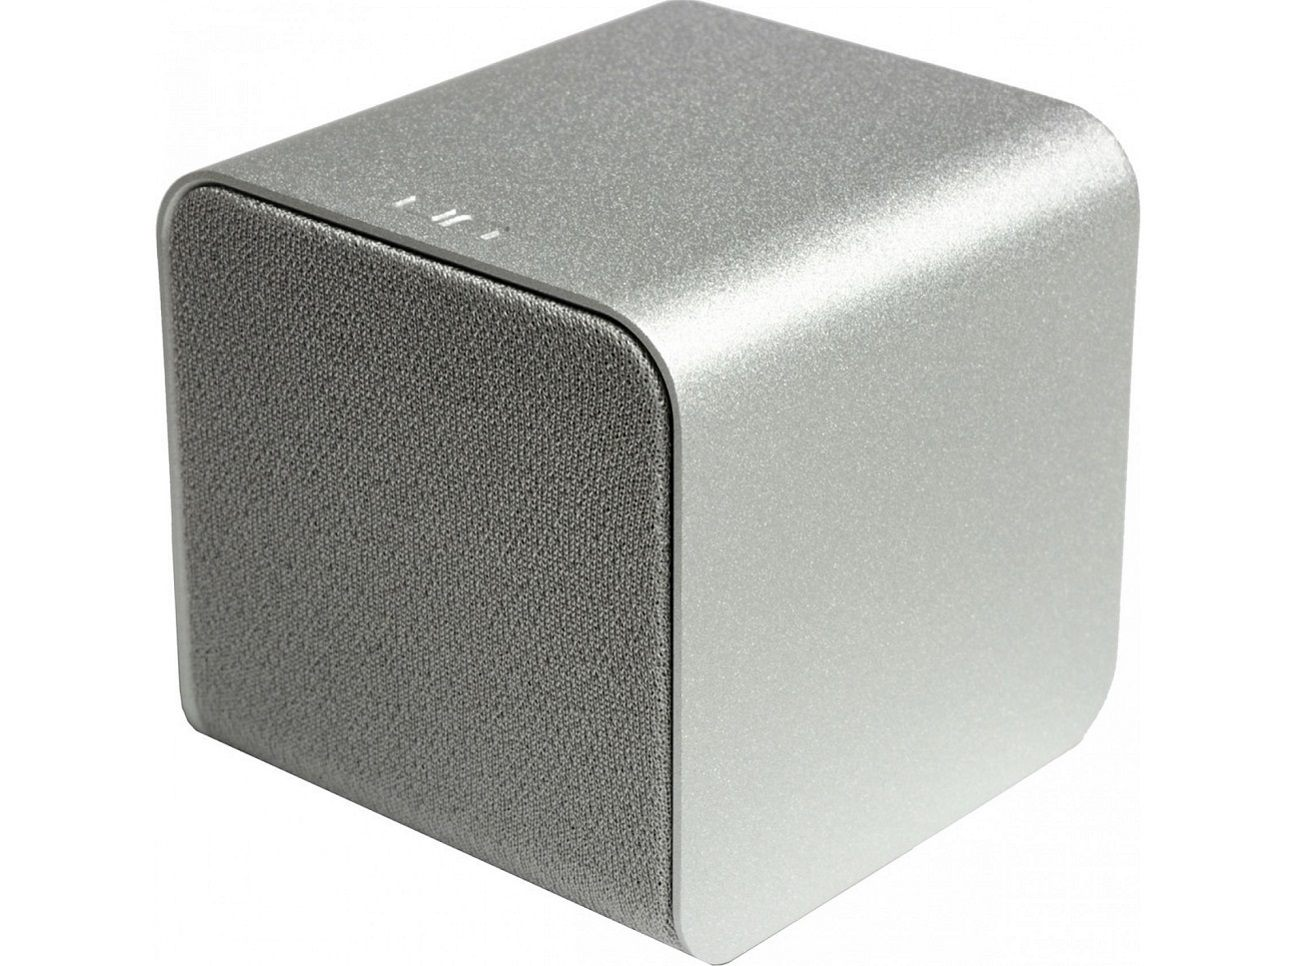 NuForce Cube Portable Speaker